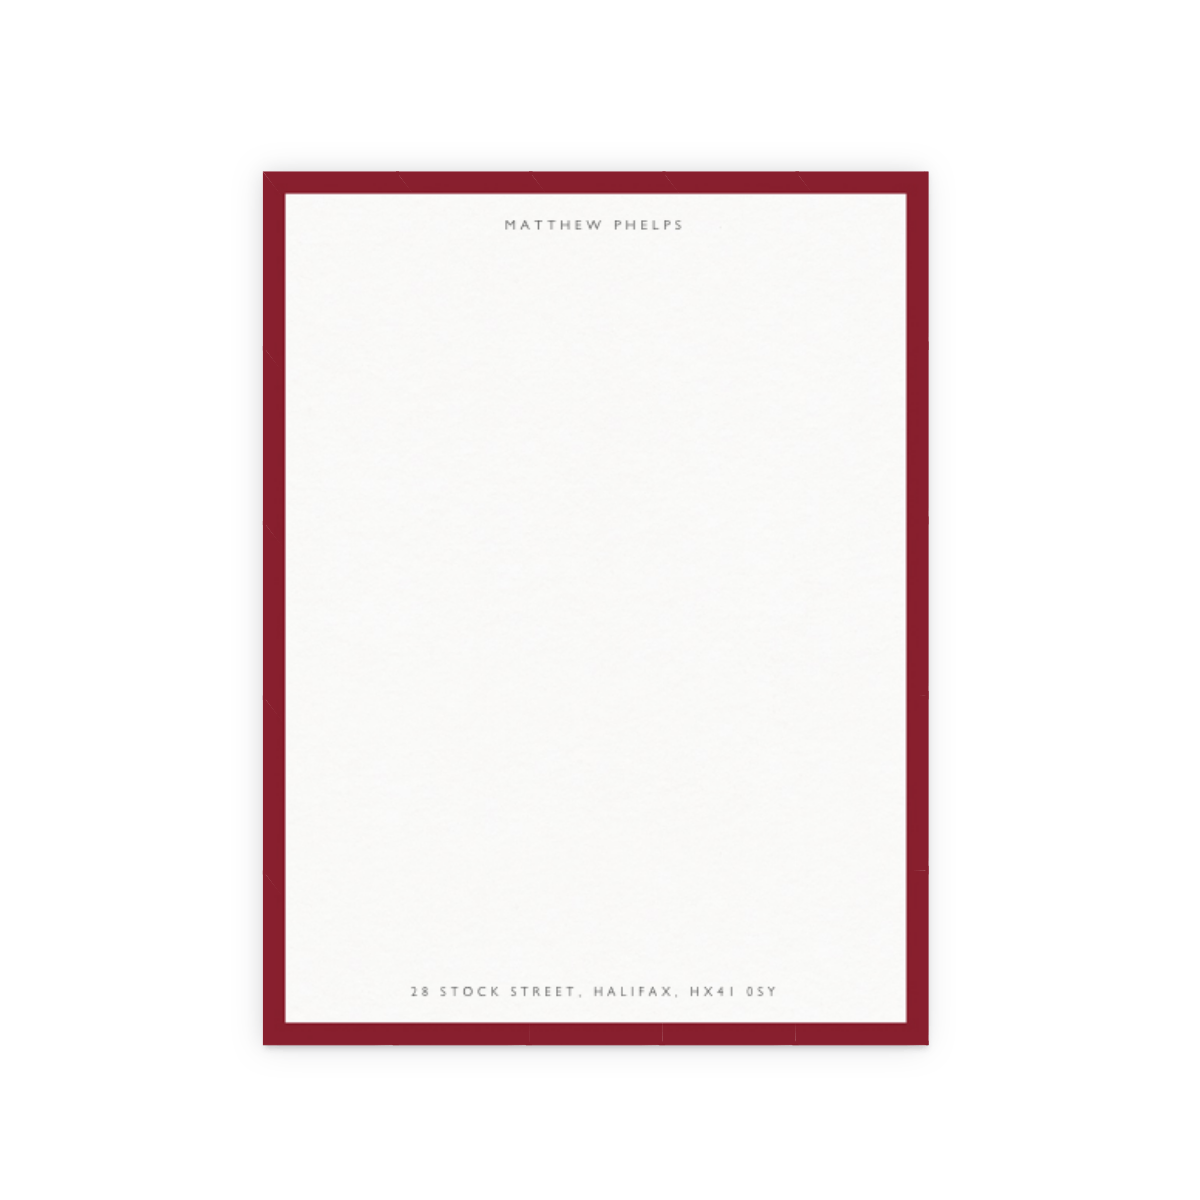 Https%3a%2f%2fwww.papier.com%2fproduct image%2f71370%2f45%2fburgundy border 16859 vorderseite 1554990647.png?ixlib=rb 1.1